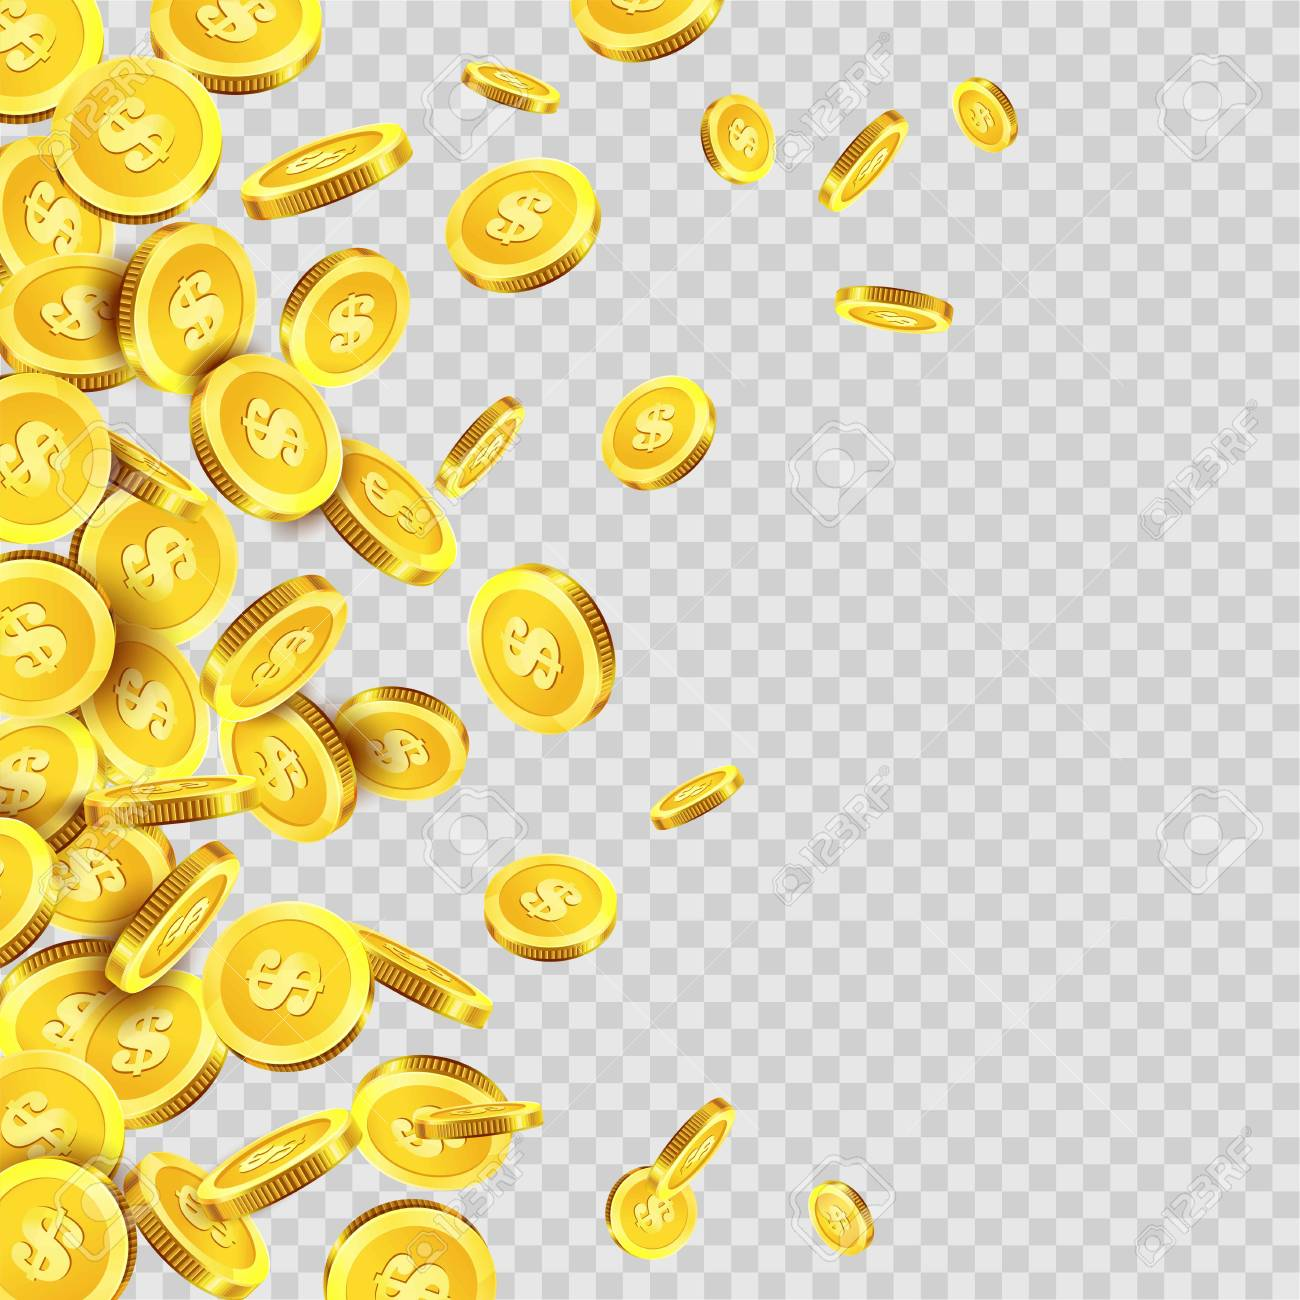 Gold Coins Rain Or Golden Money Coin Pattern On Vector Transparent Background Stock